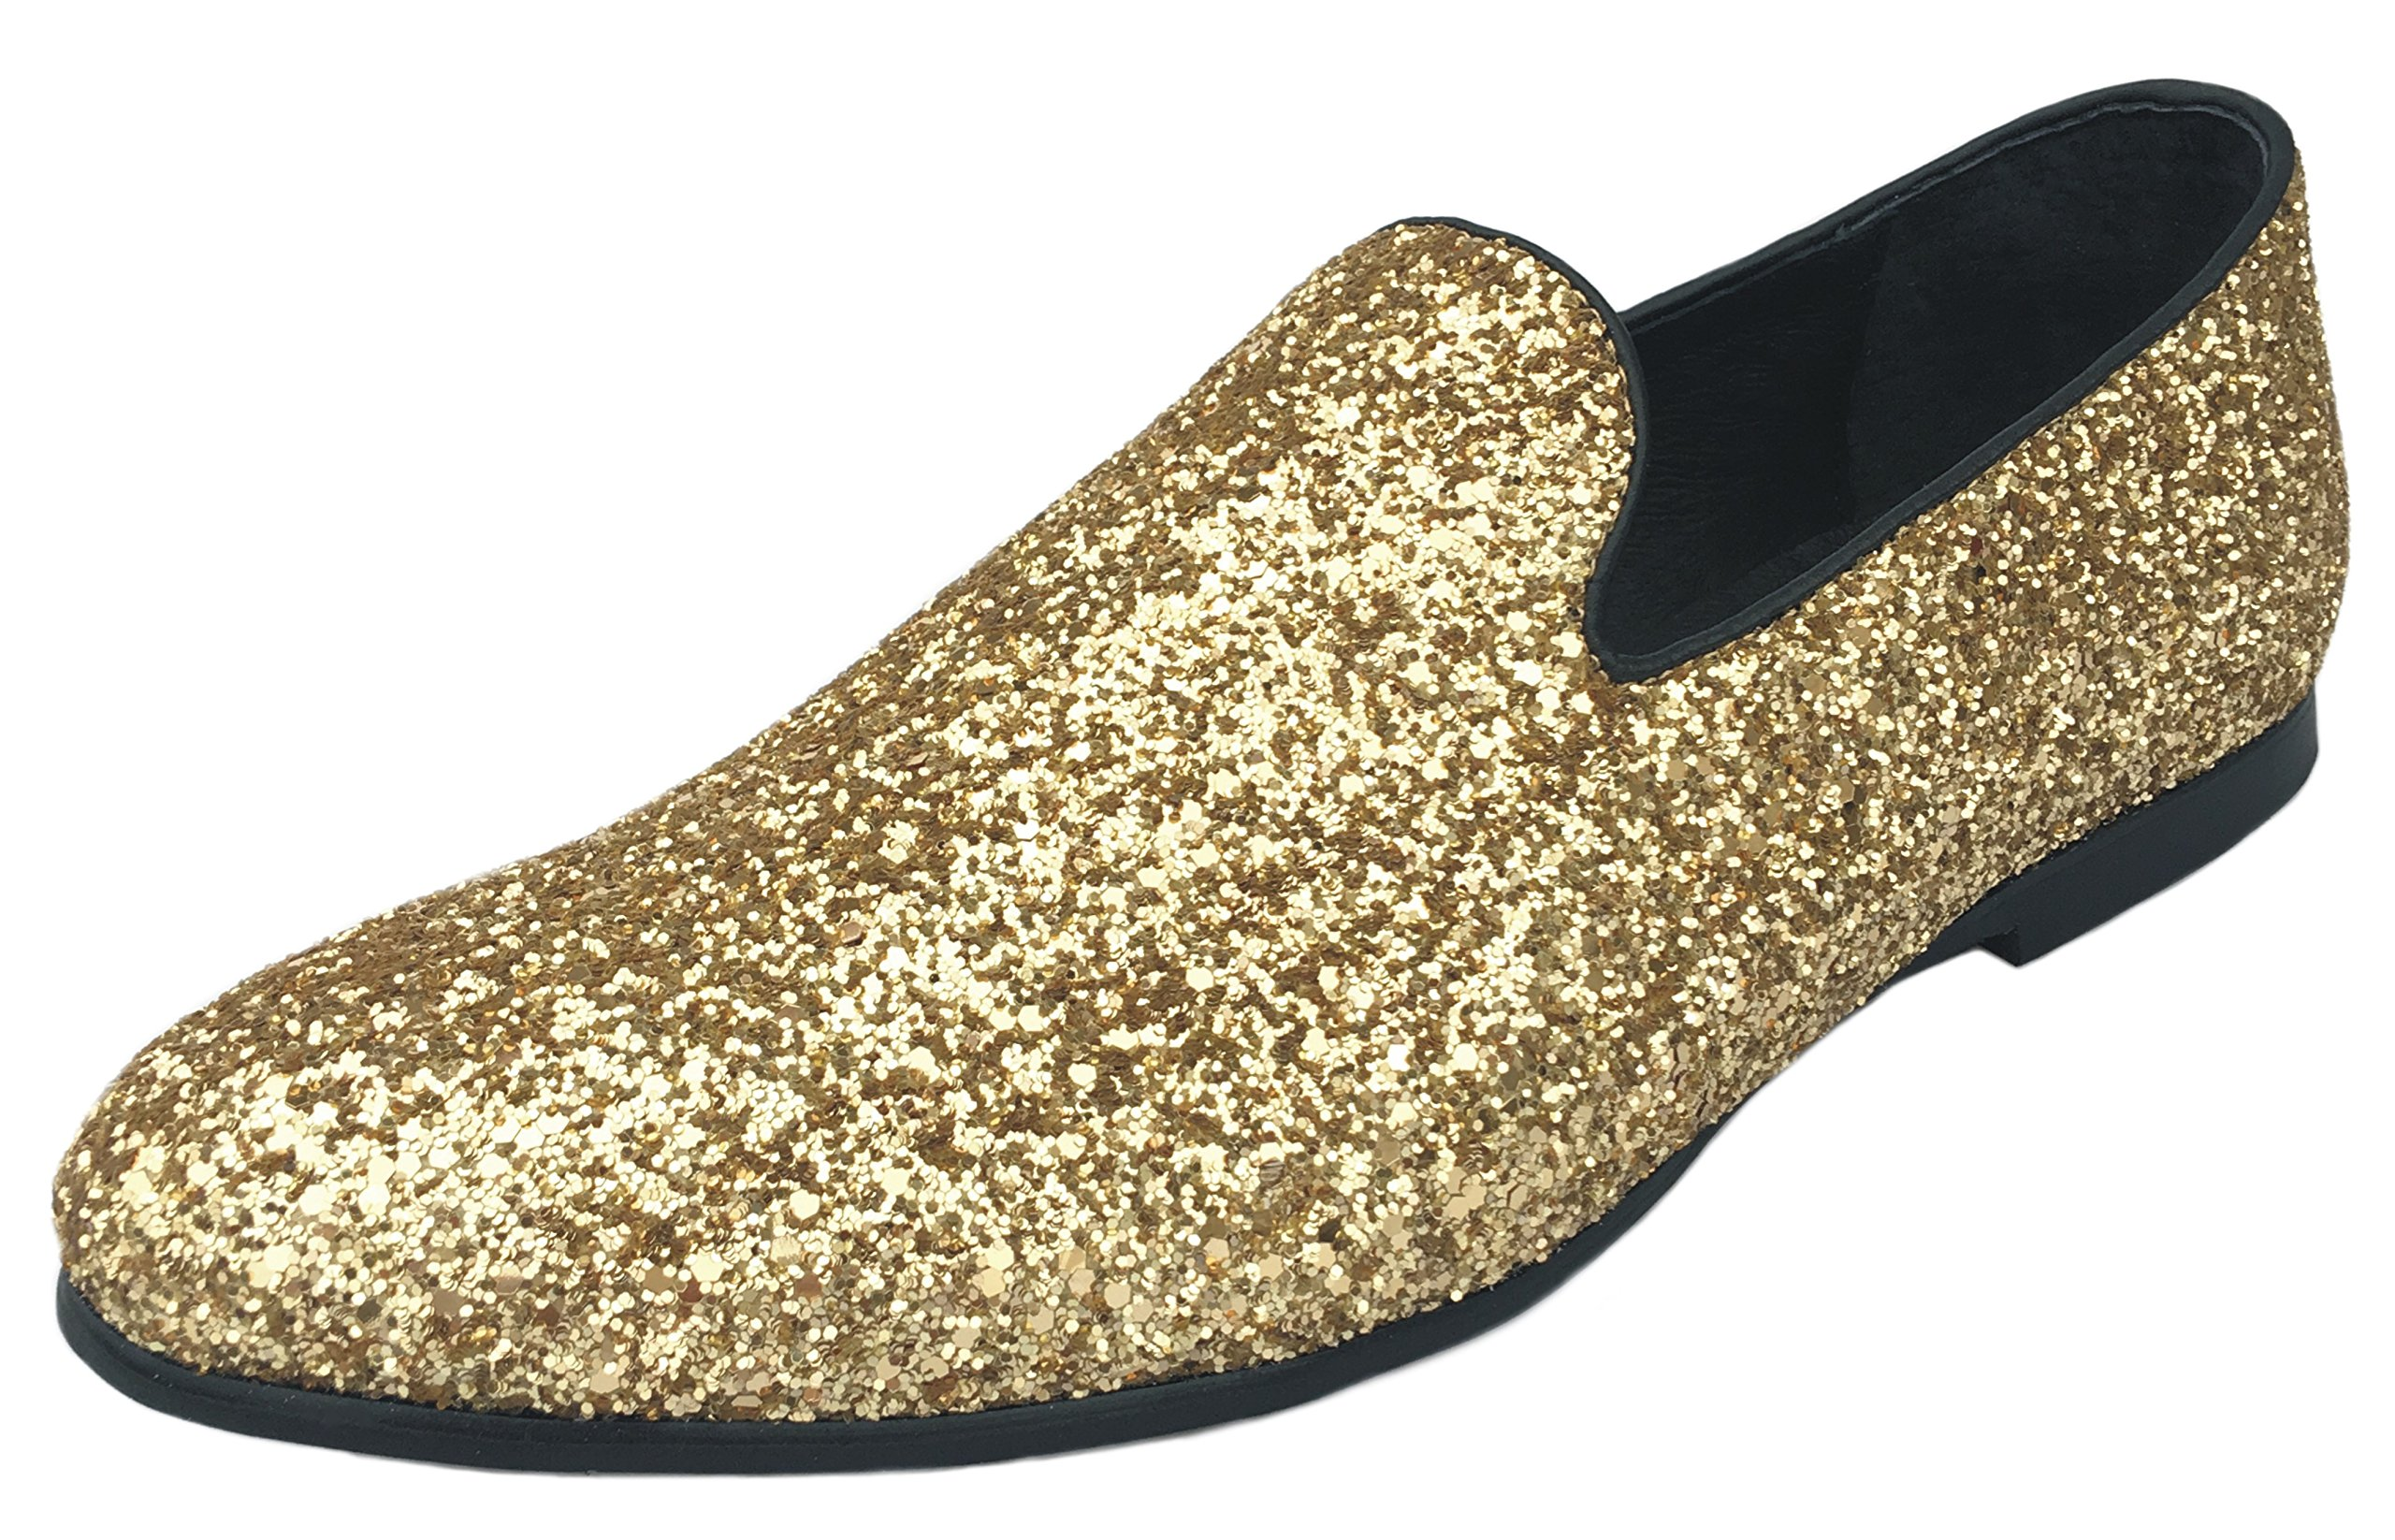 Justar Men's Metallic Glitter Sequins Loafers Dress Shoes Tuxedo Slip On Smoking Slippers Gold Silver Blue (10 D(M) US, Gold)